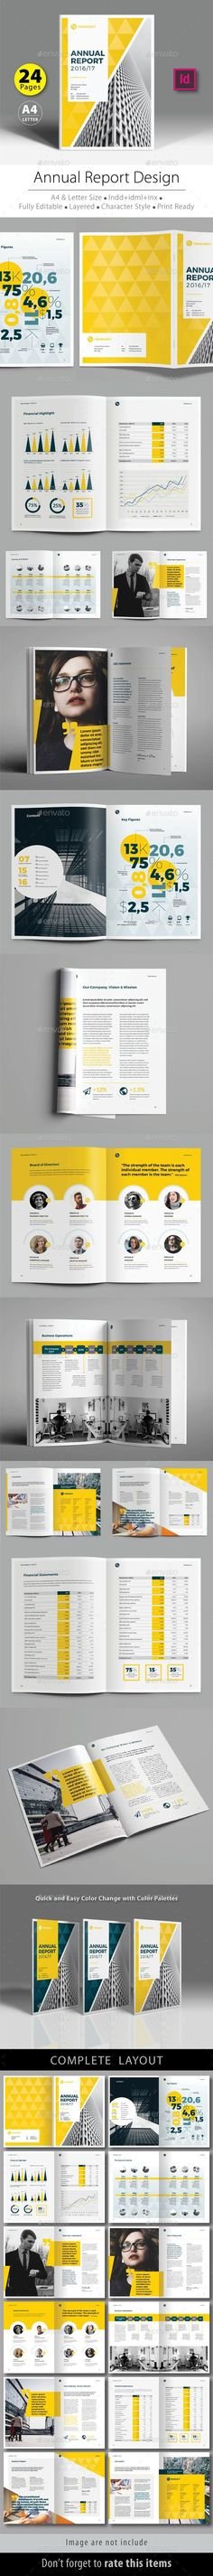 11 Best White Paper Designs images Paper design, White paper